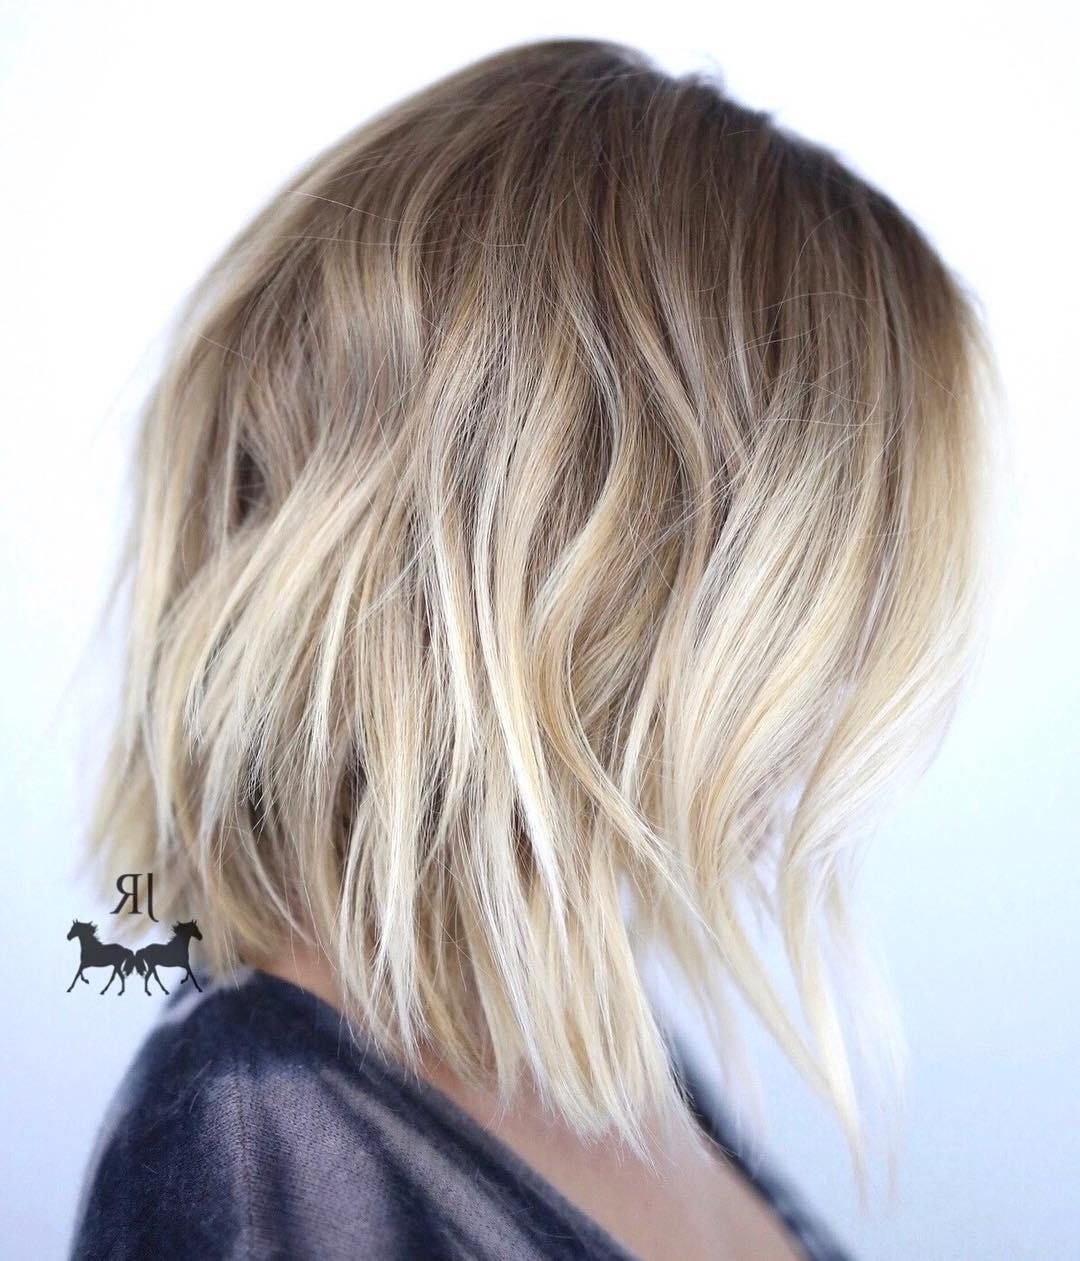 Medium Throughout Current Short To Medium Bob Hairstyles (View 13 of 21)